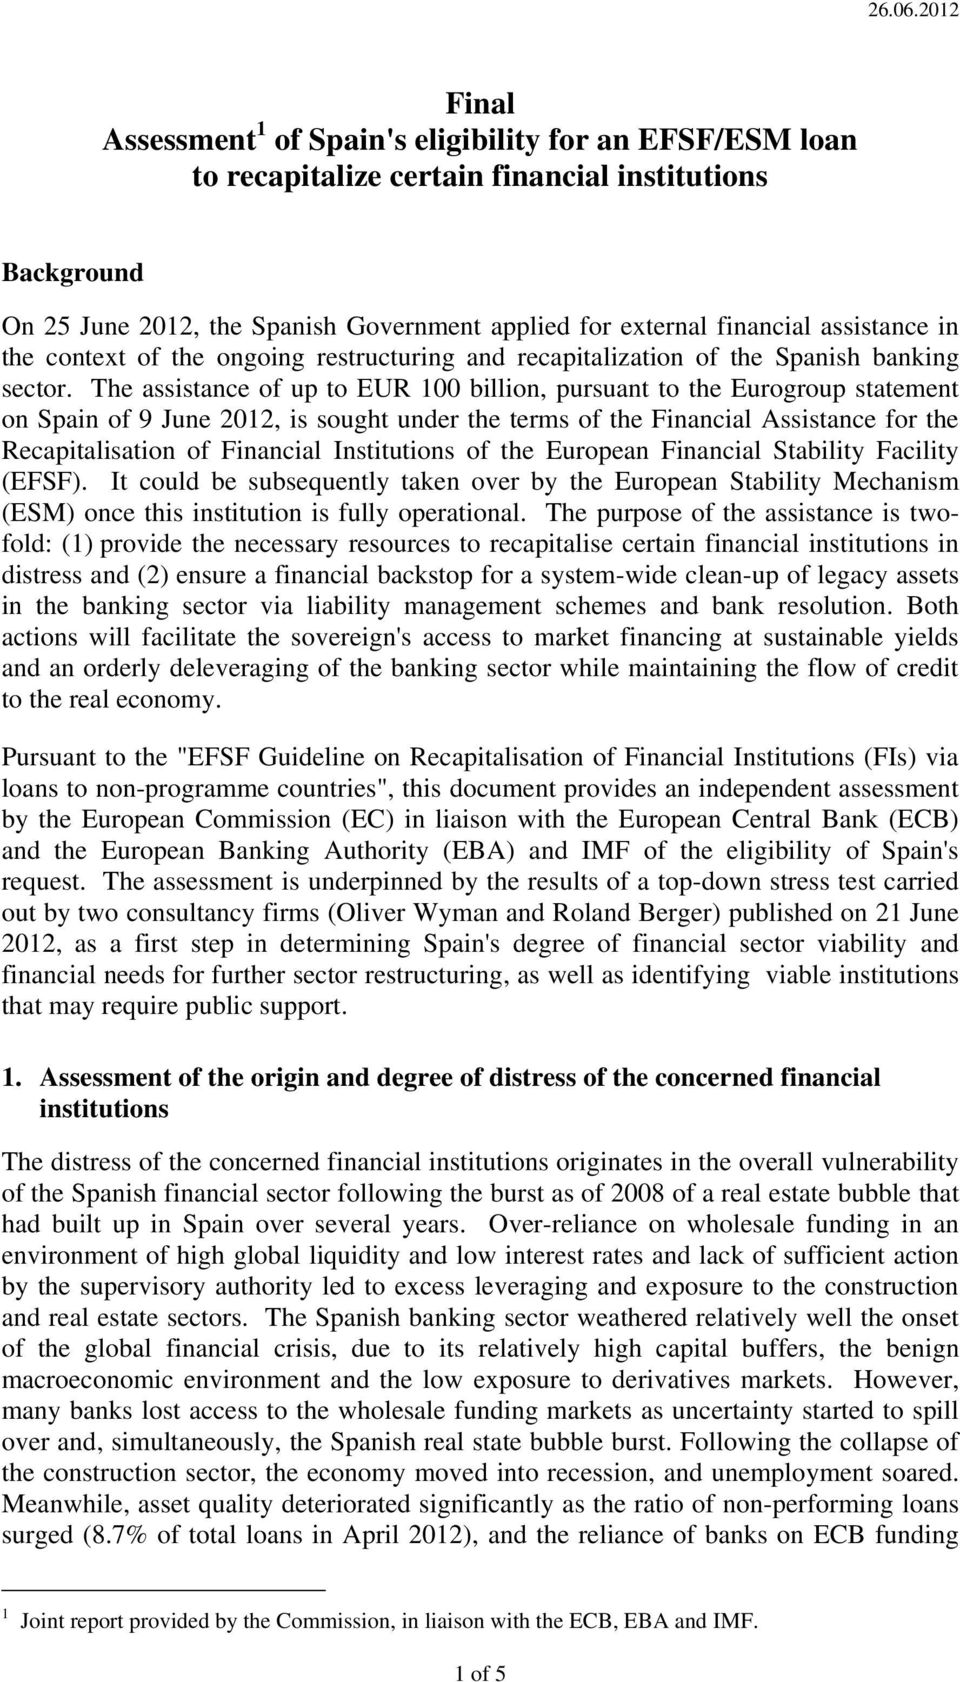 The assistance of up to EUR 100 billion, pursuant to the Eurogroup statement on Spain of 9 June 2012, is sought under the terms of the Financial Assistance for the Recapitalisation of Financial